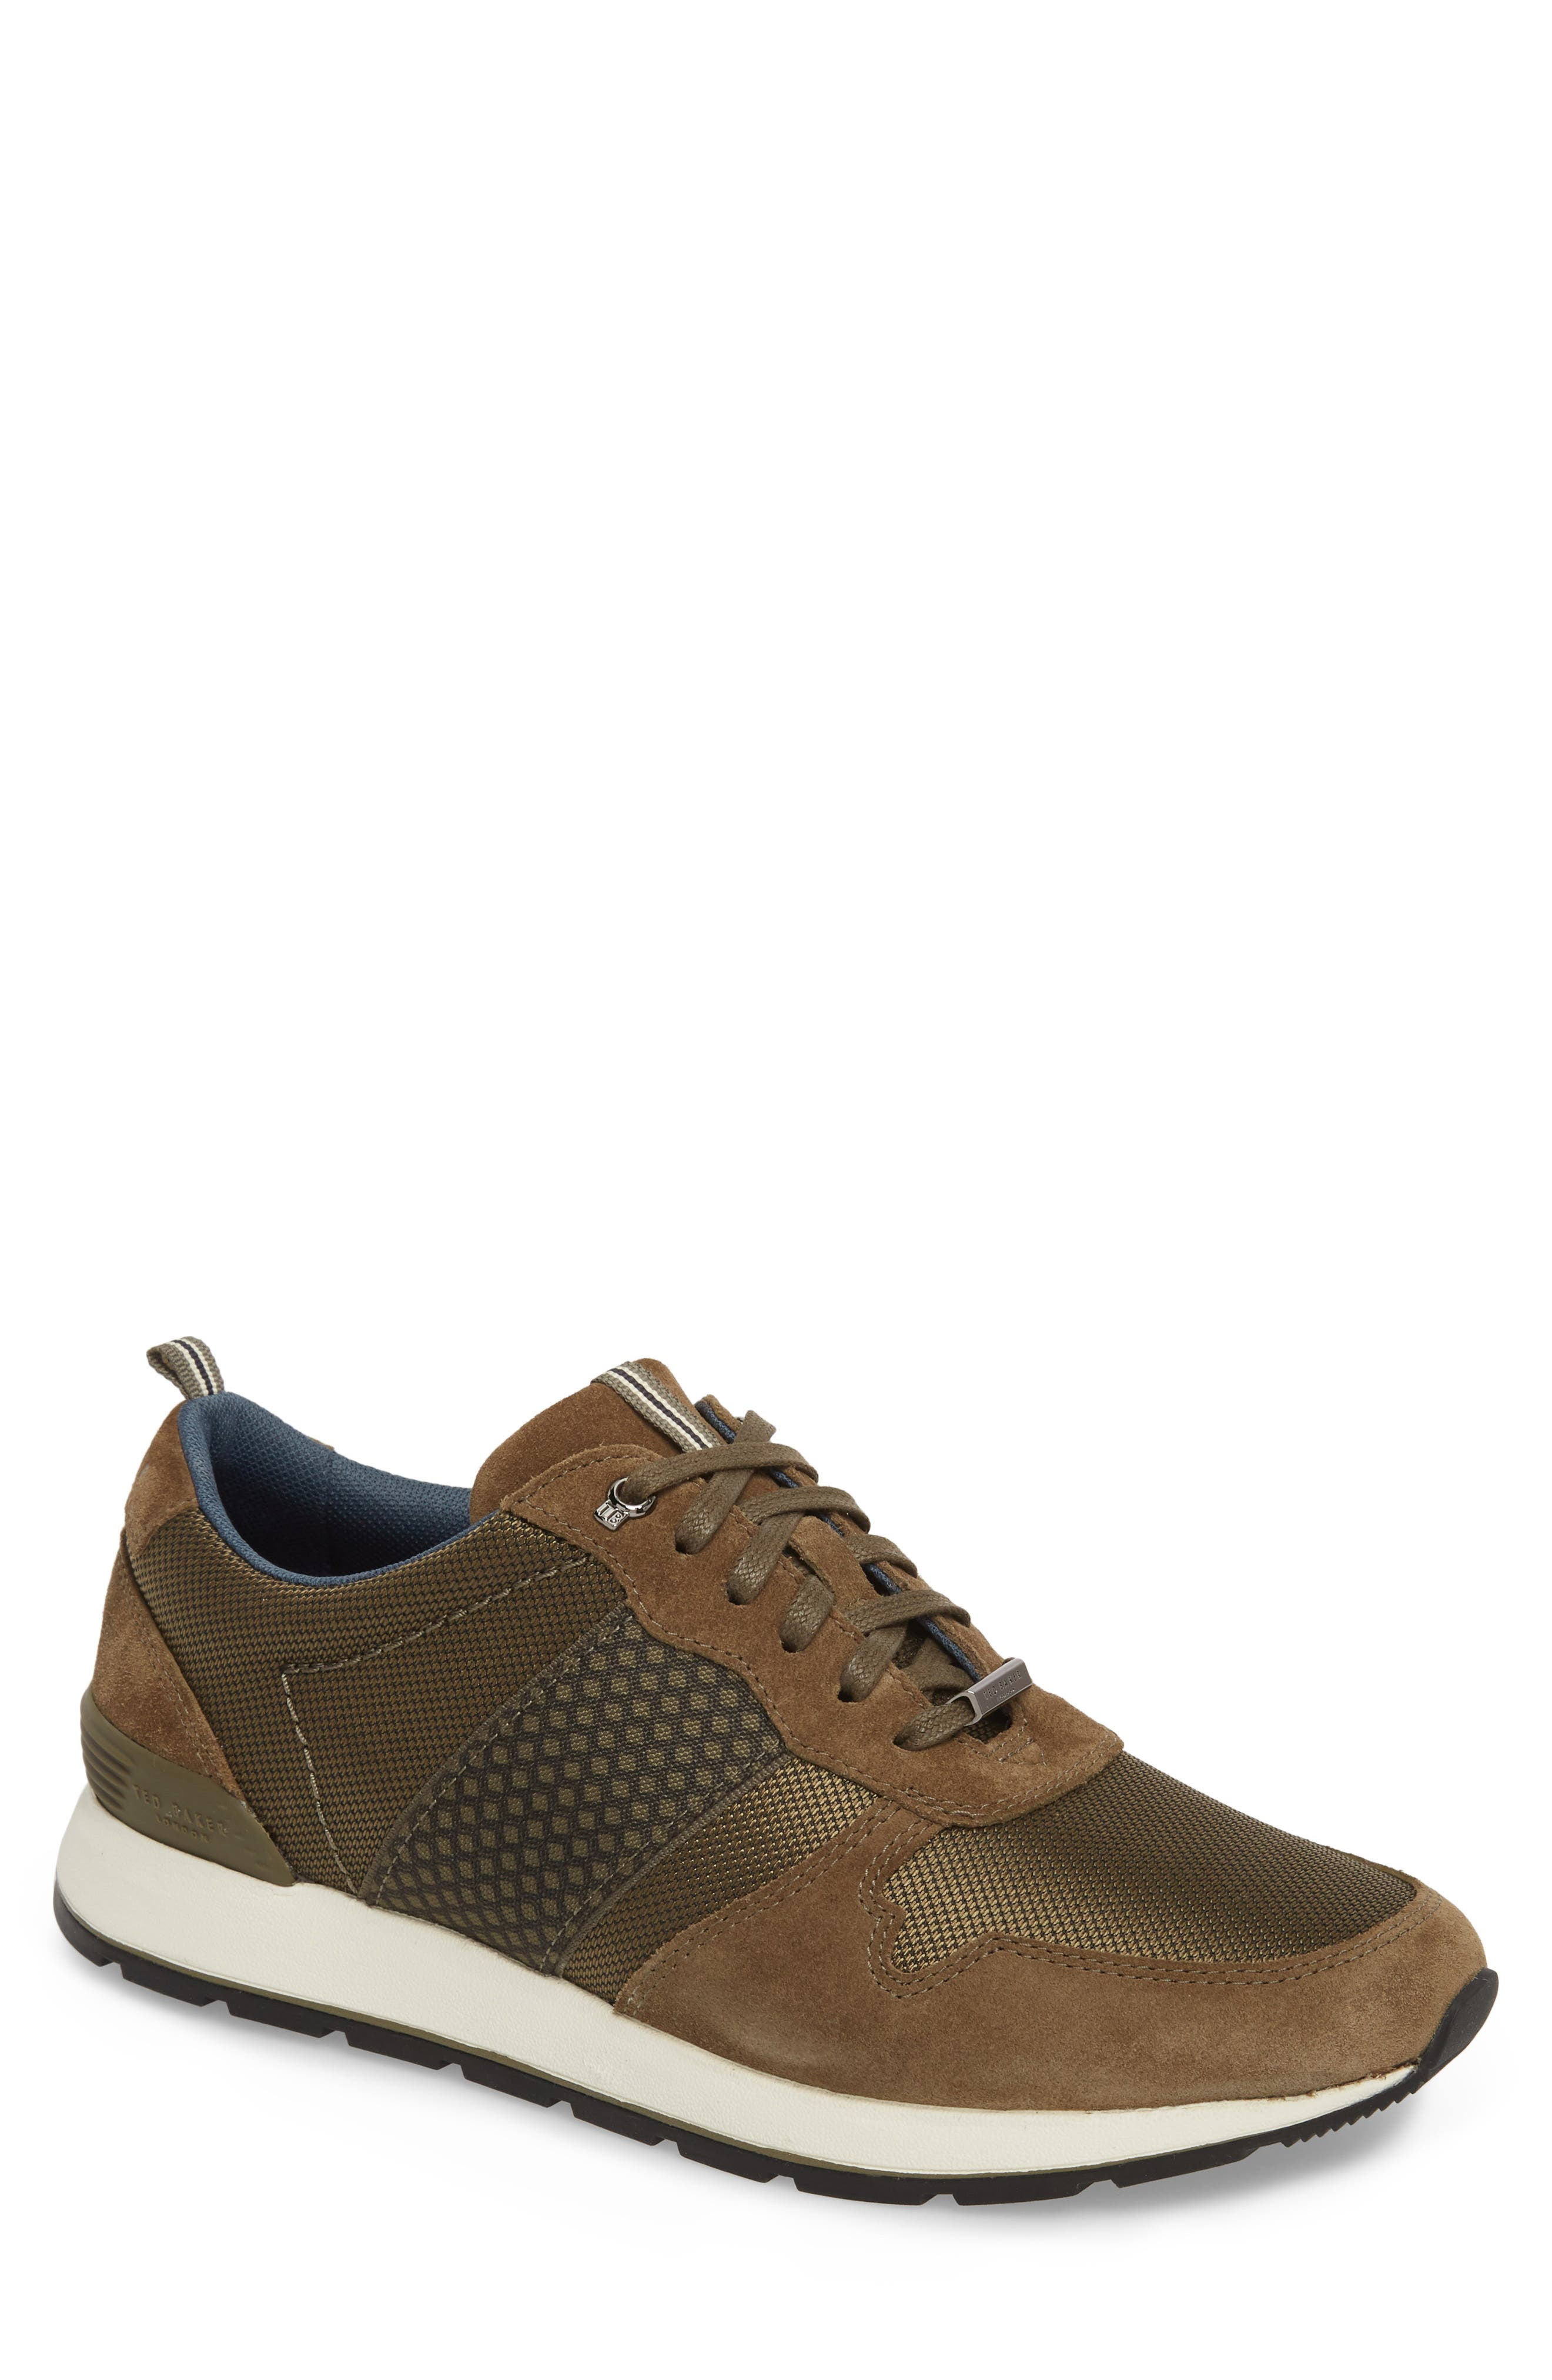 Hebey Lace-Up Sneaker,                             Main thumbnail 1, color,                             Dark Green Textile